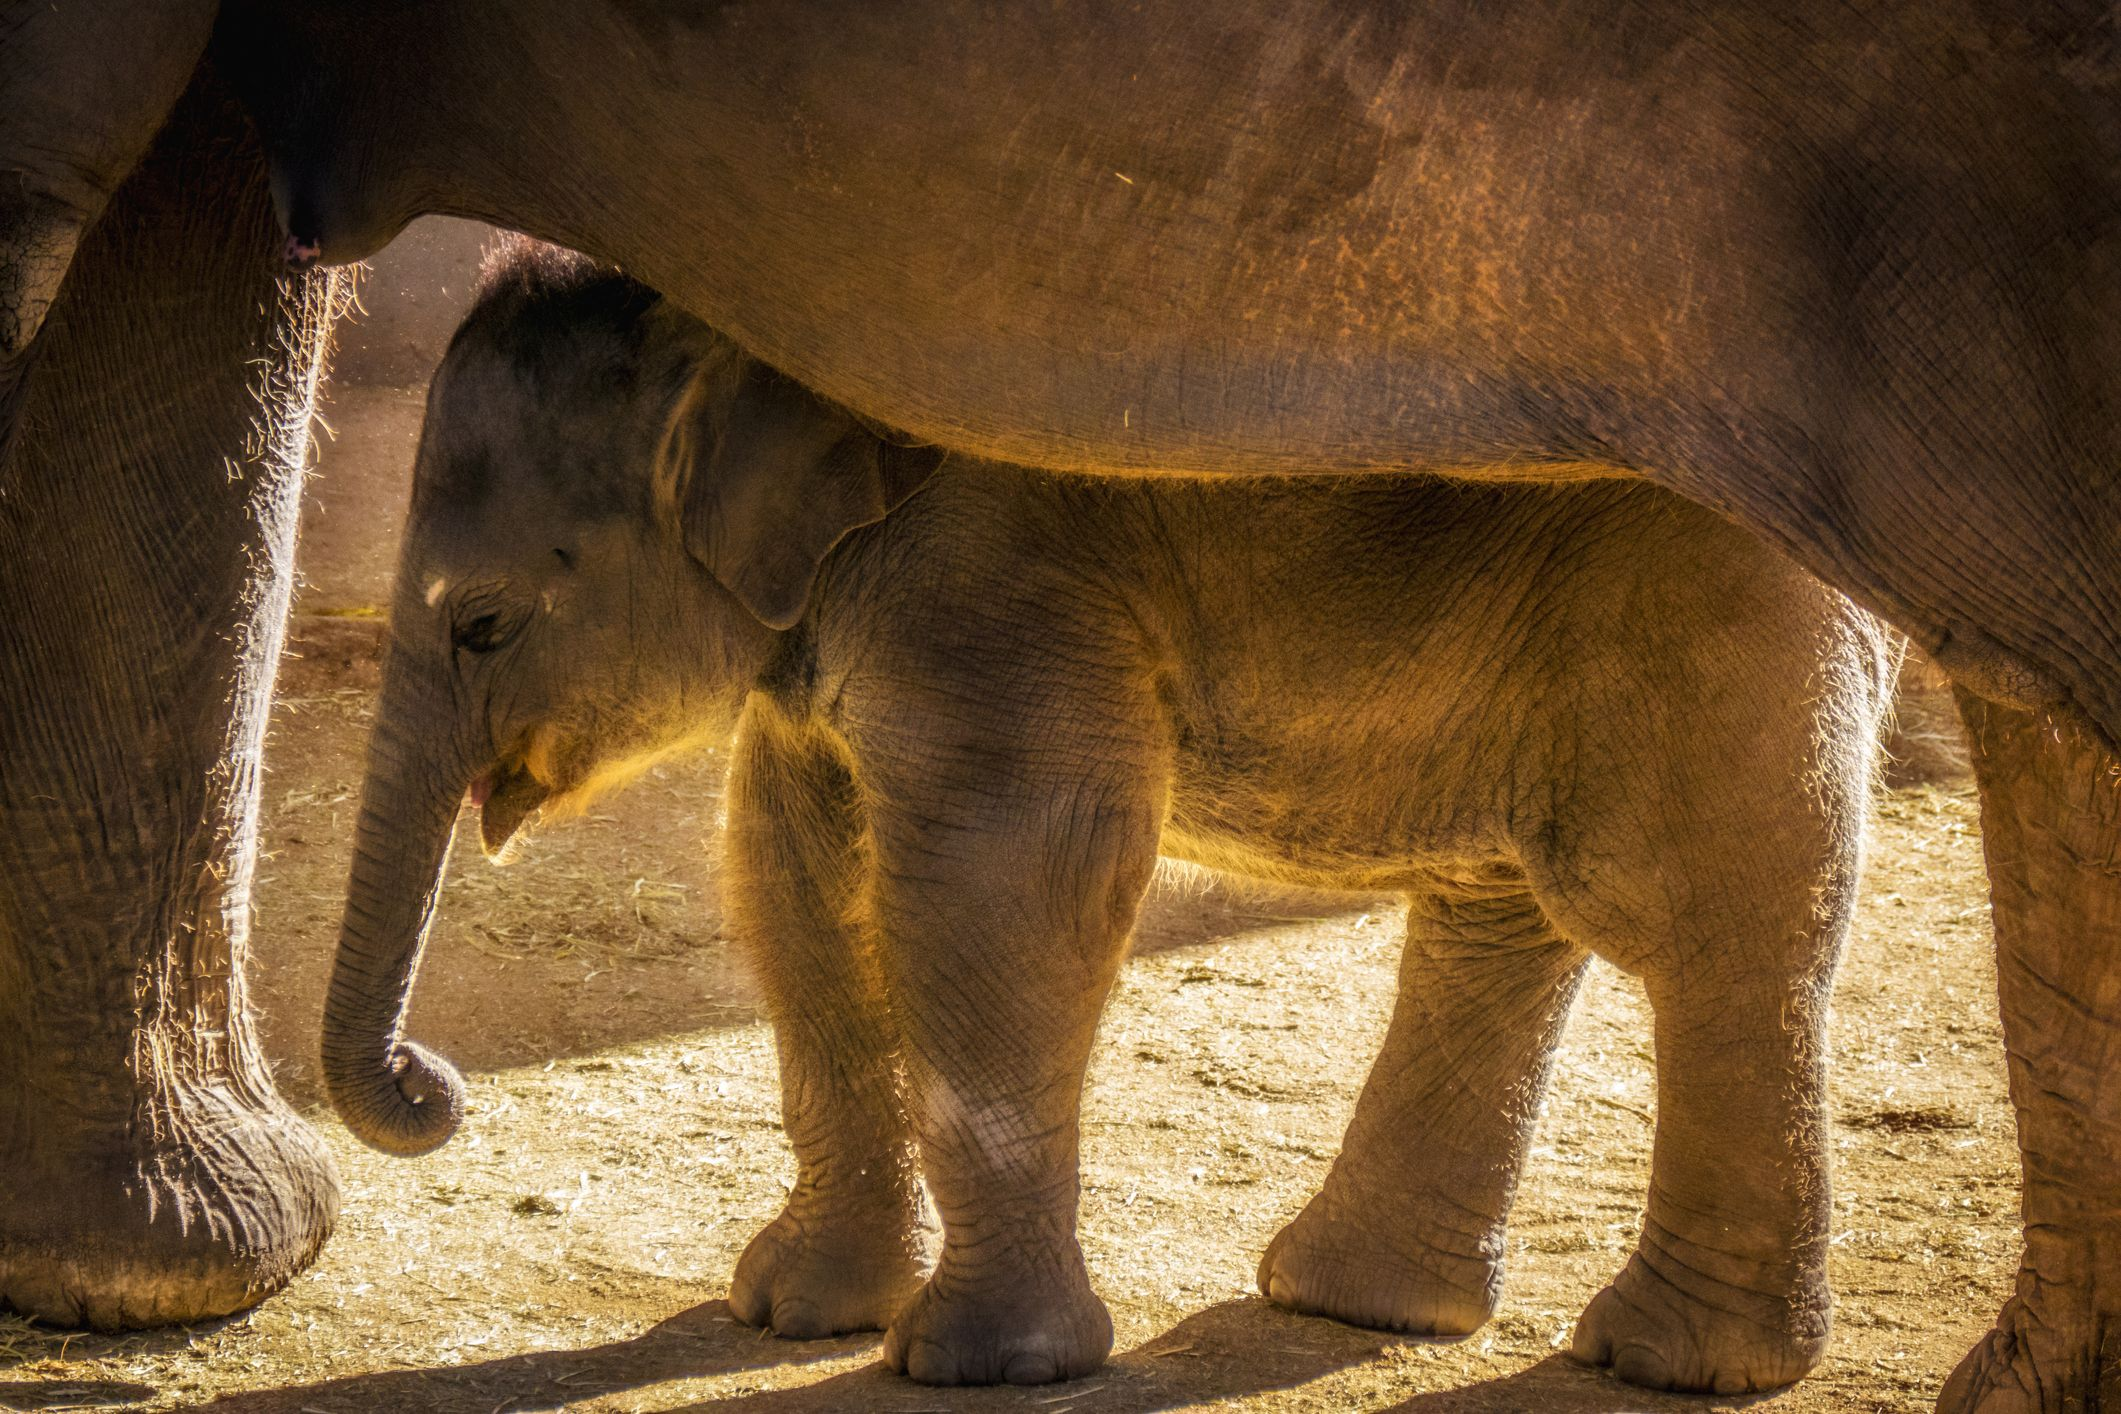 Elephants can be pregnant for two years.